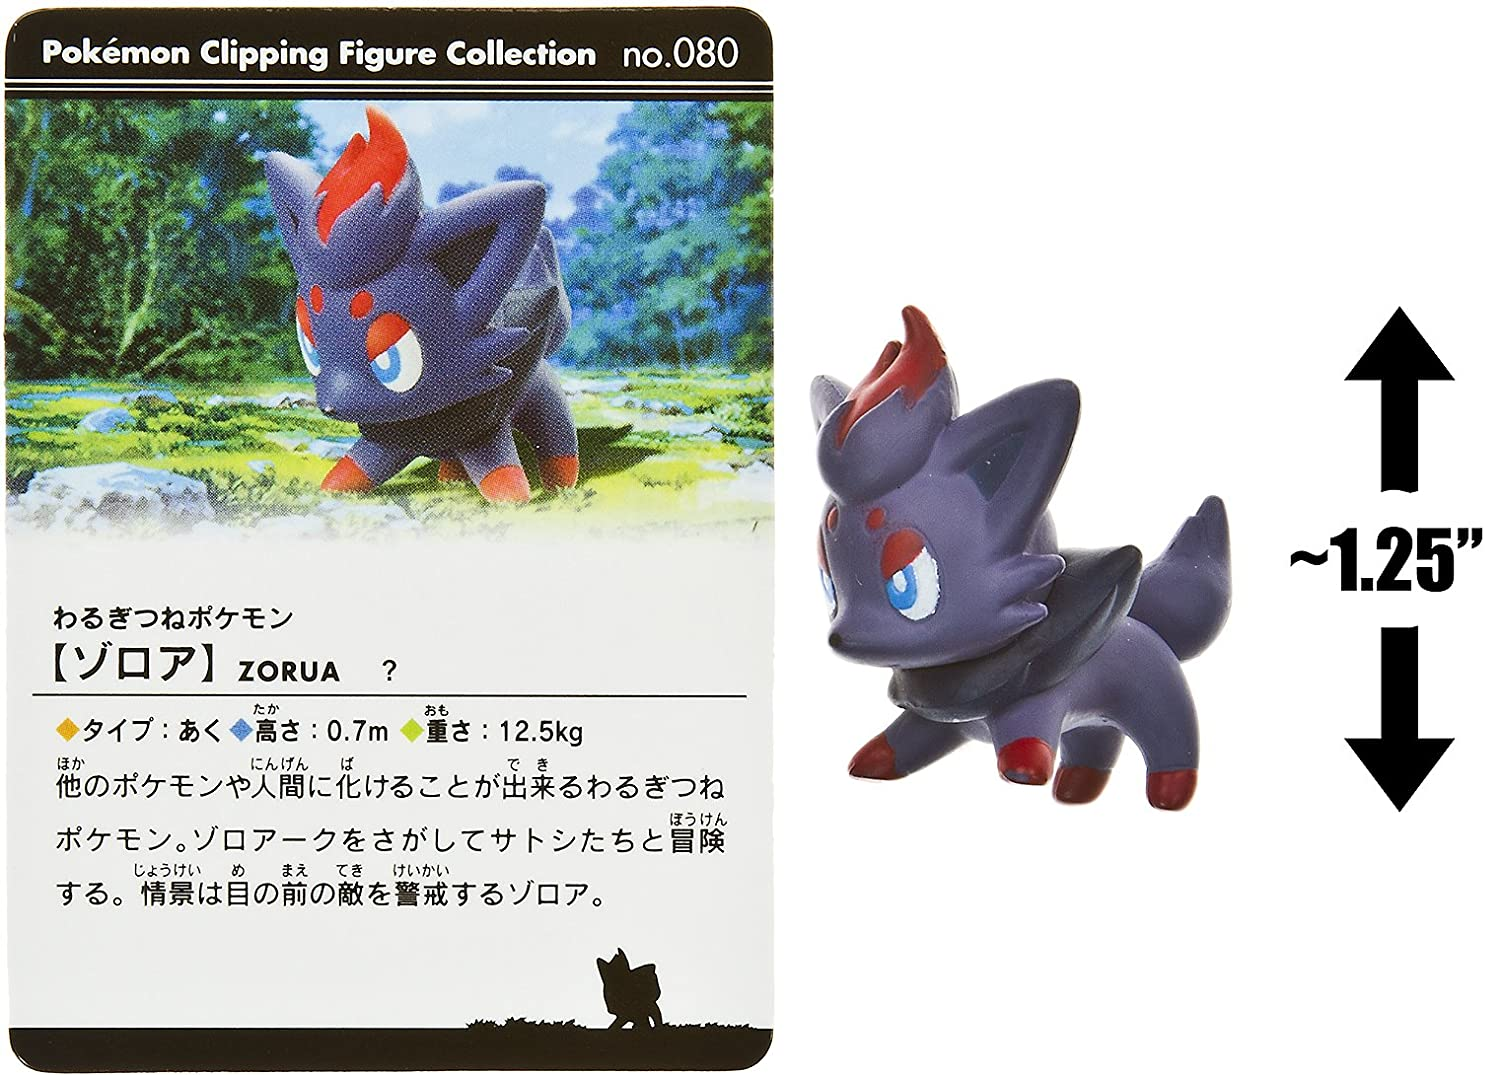 Pokemon Clipping Figure Collection  2 : Phantom Ruler: Zoroark-1.25